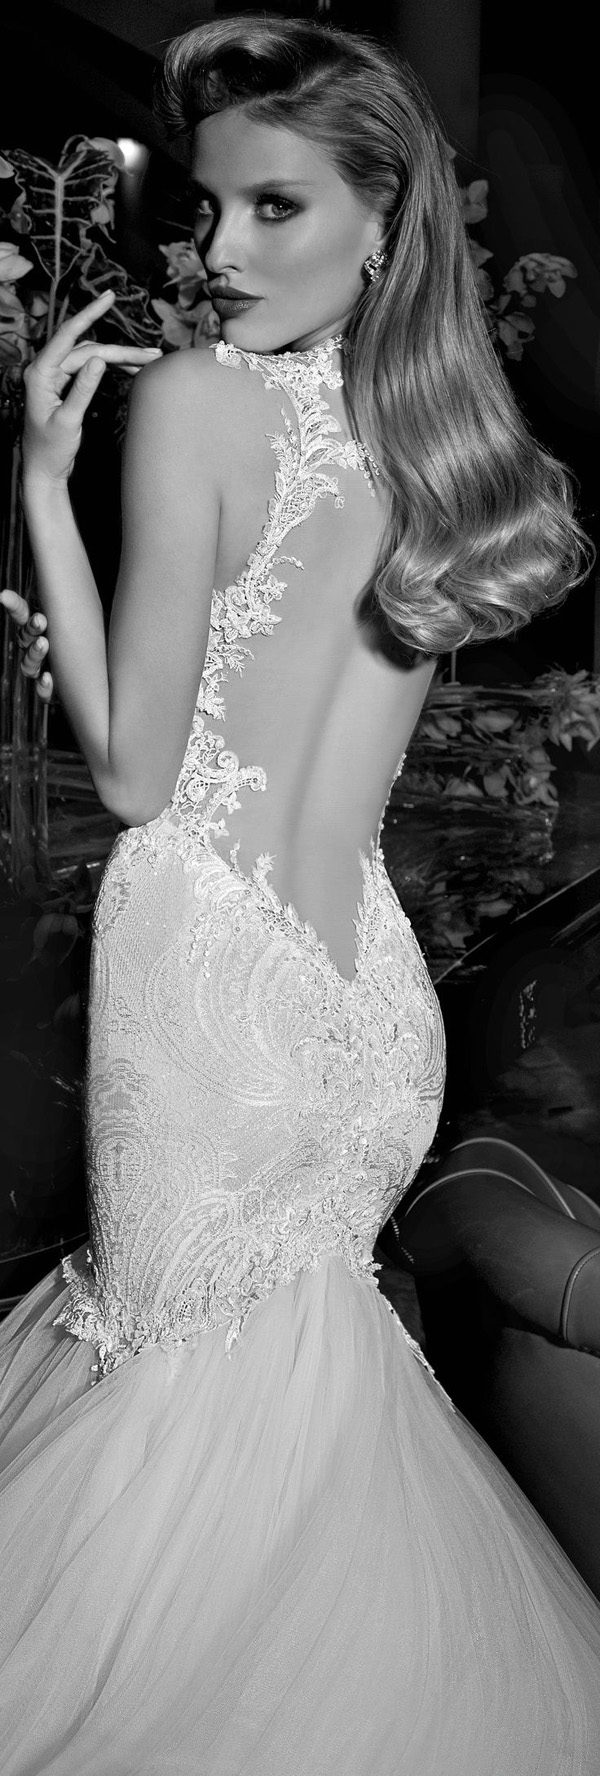 20 Gorgeous Wedding Dresses You Will Love – Elegantweddinginvites ...